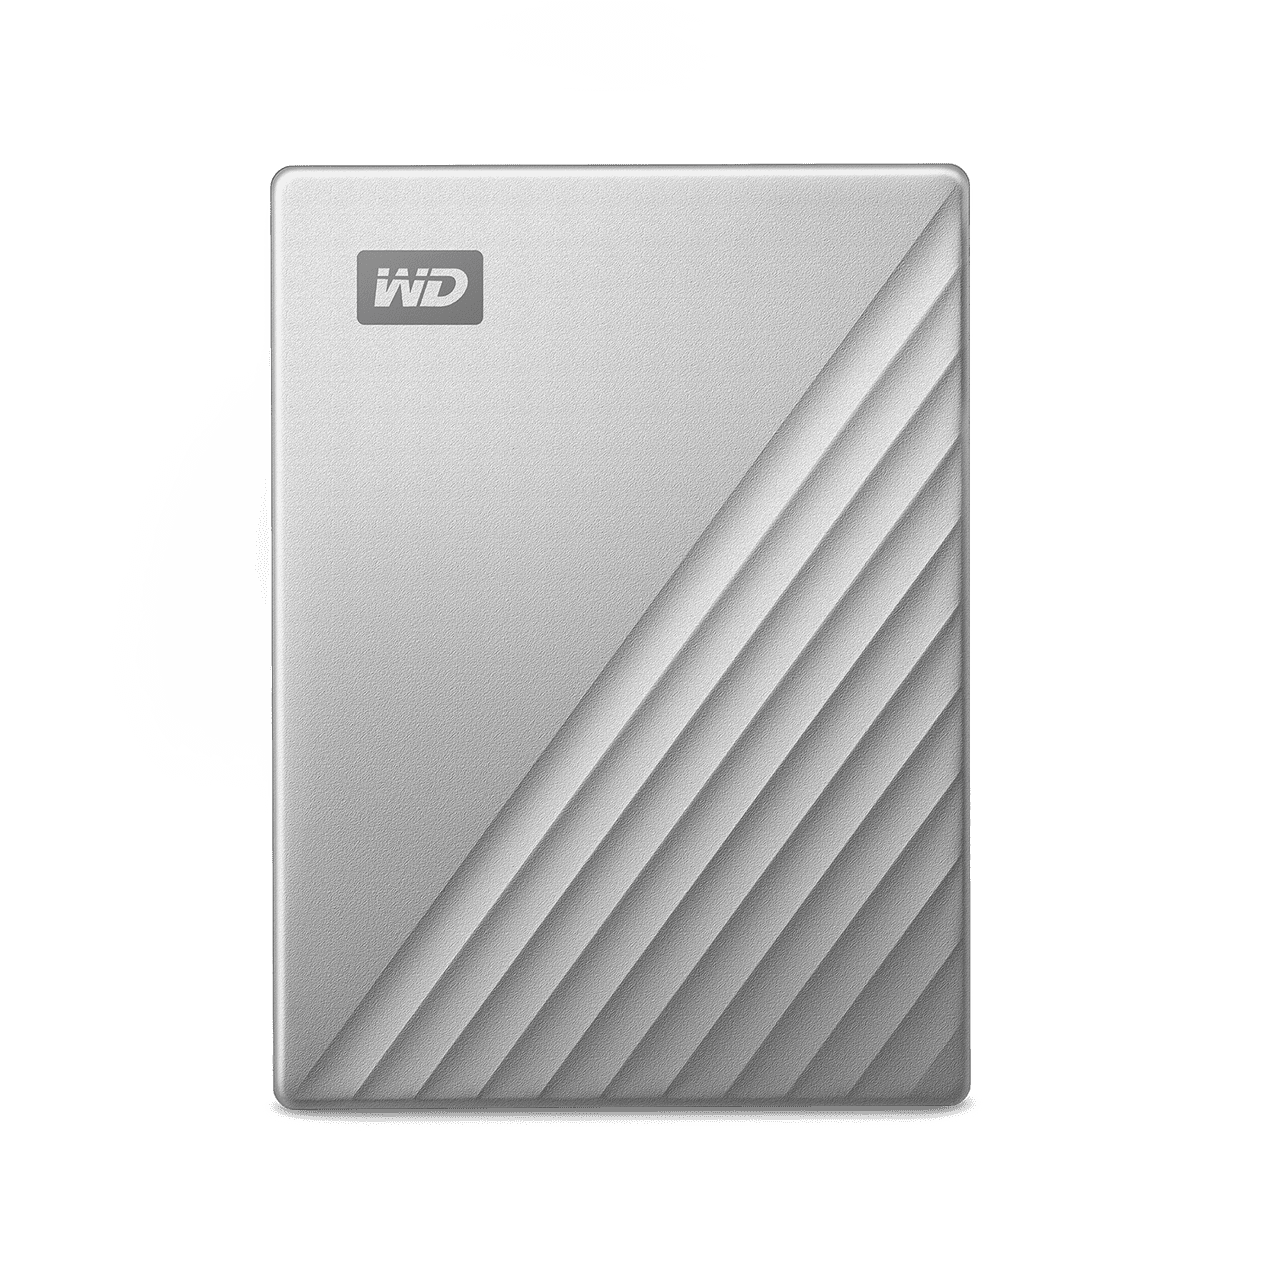 WD My Passport Ultra - New Model 2TB USB 3.1 Type C